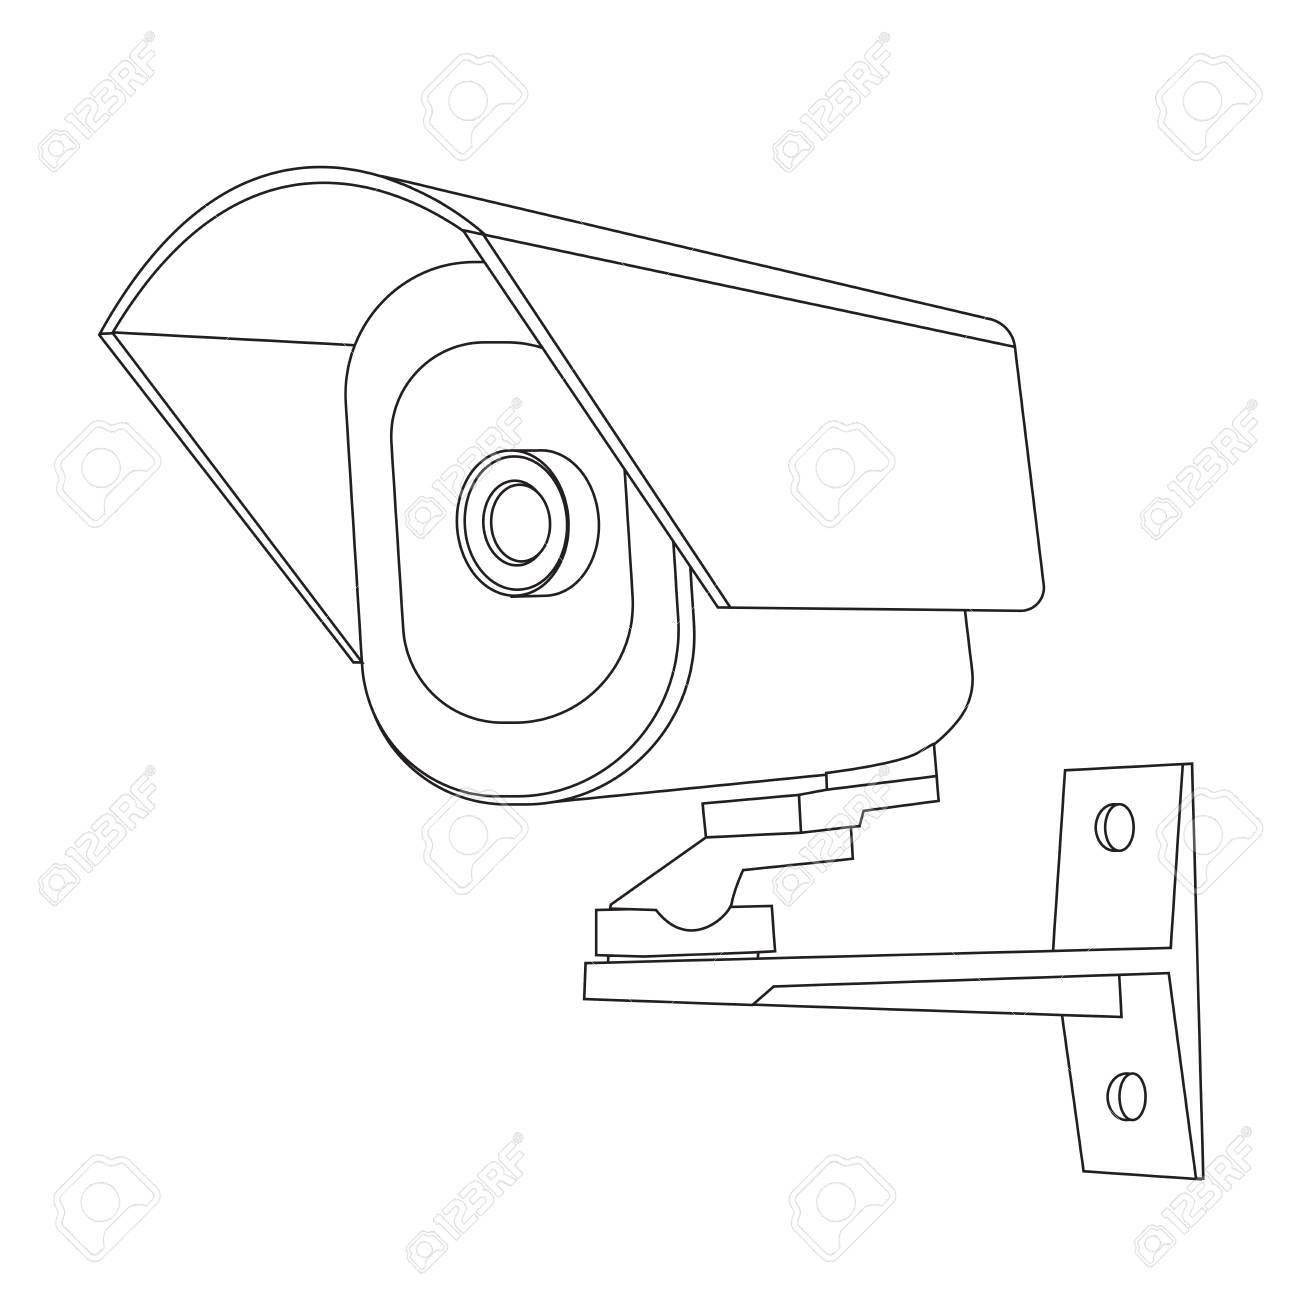 Surveillance Camera Drawing at GetDrawings com   Free for